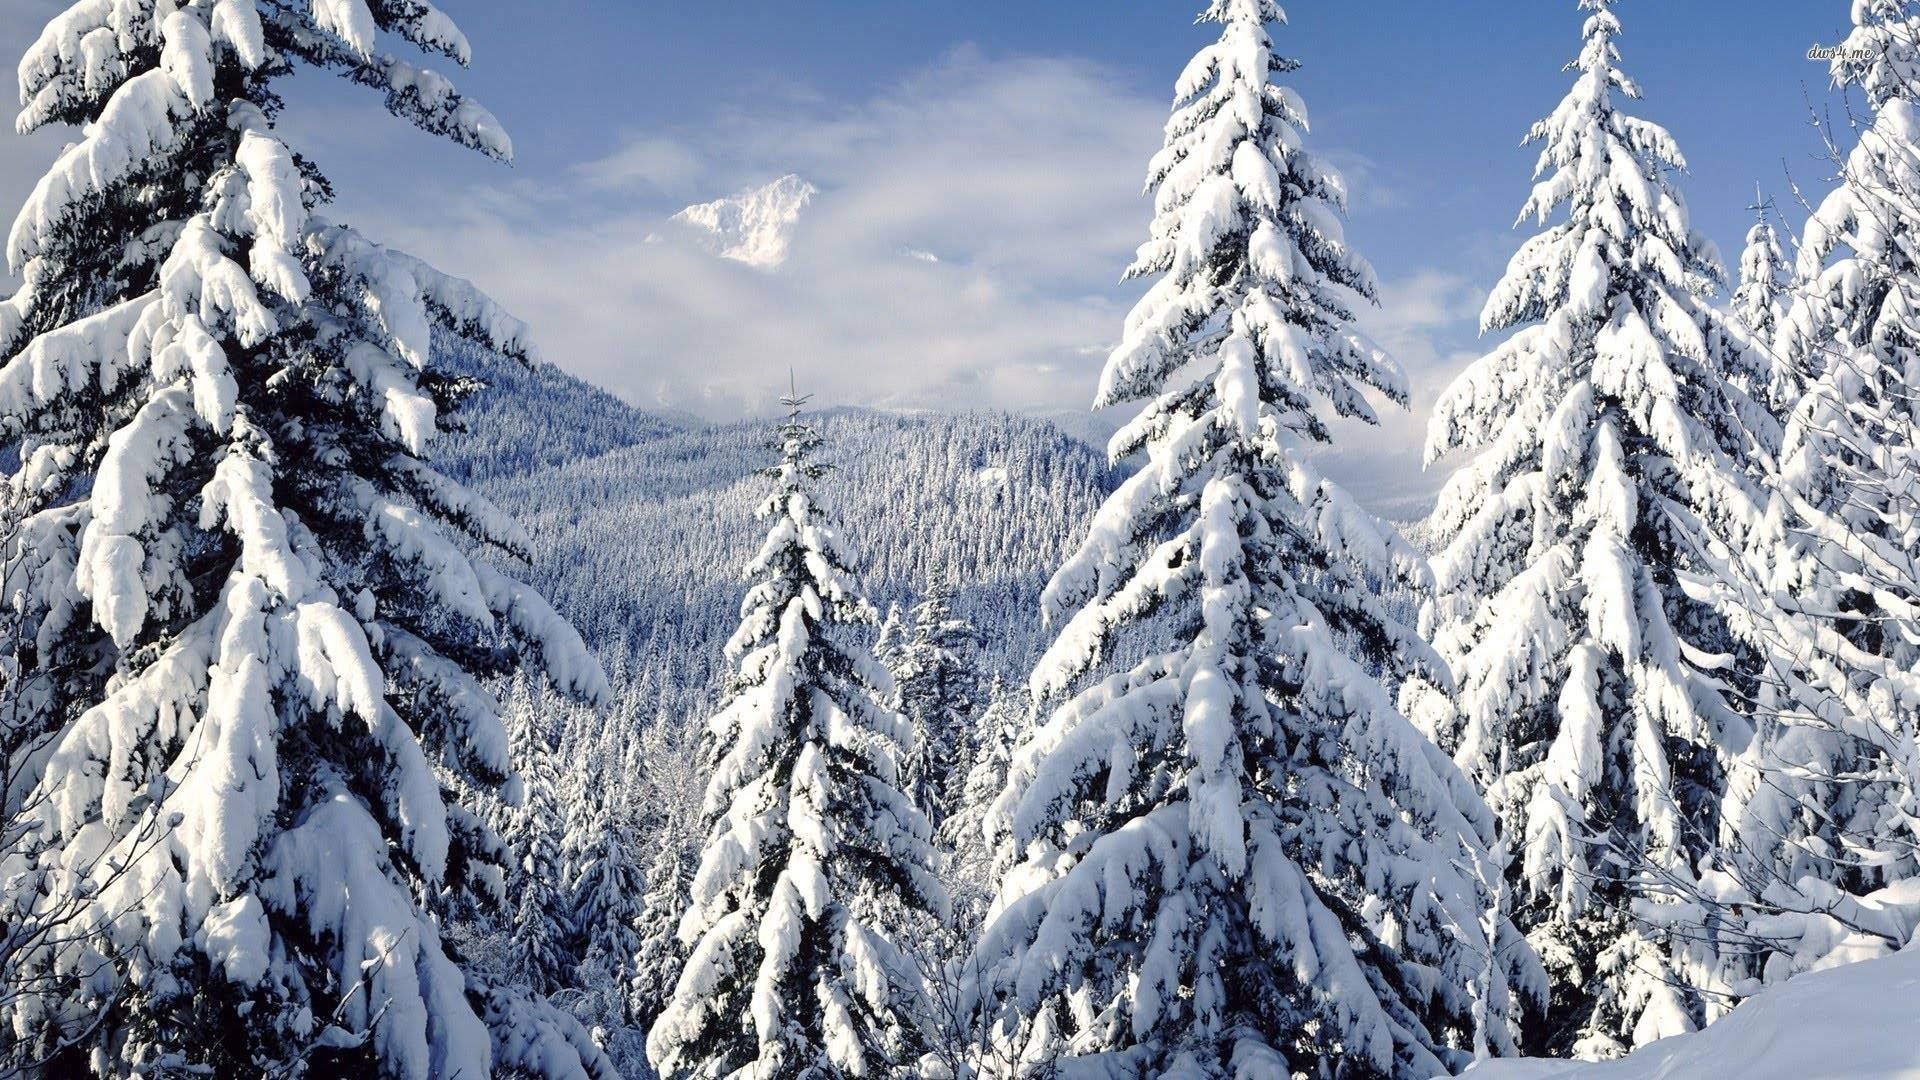 Beautiful snow on evergreen trees and mountains